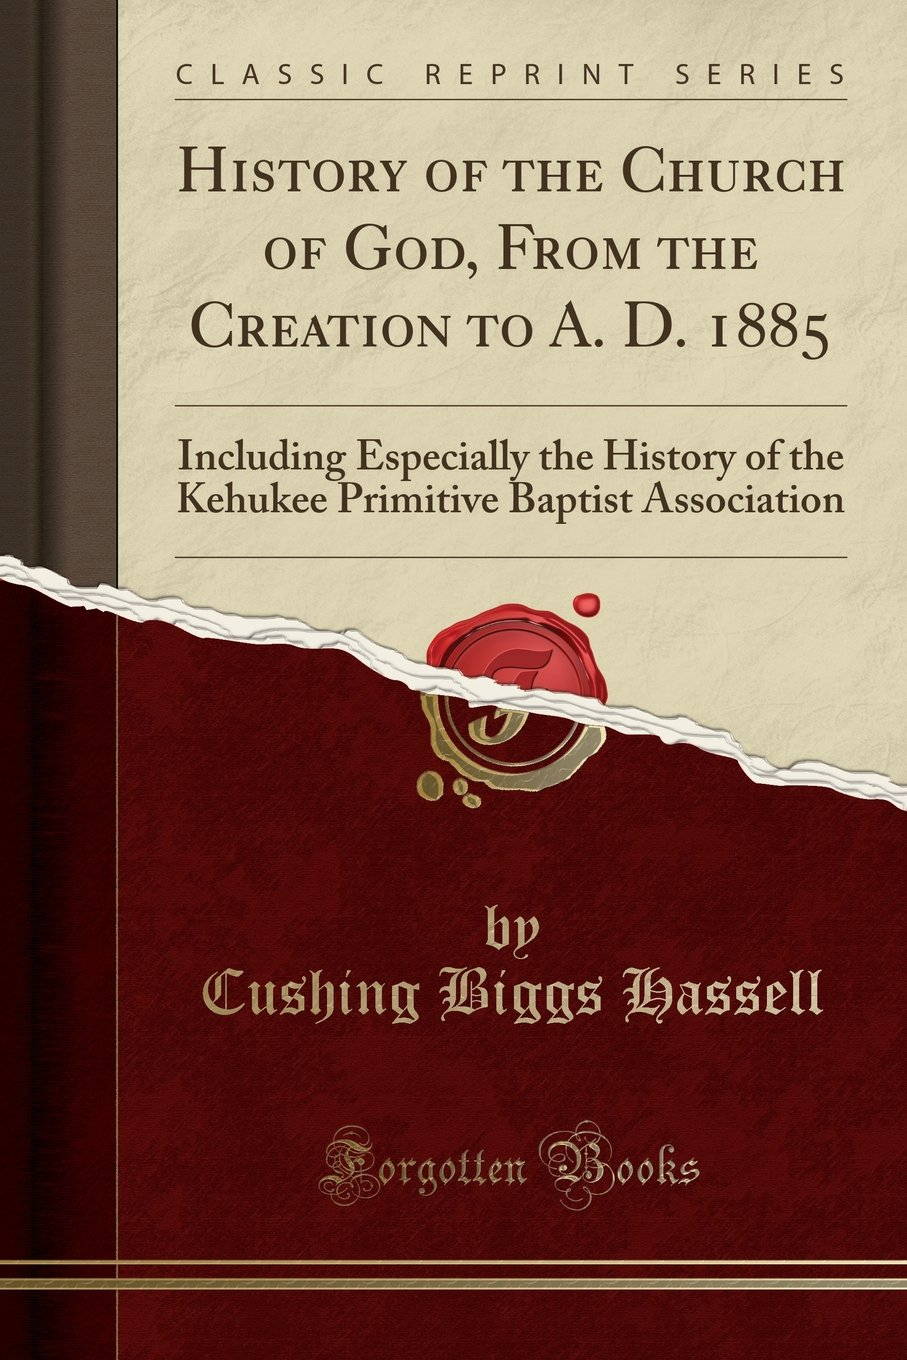 Download History of the Church of God, From the Creation to A. D. 1885: Including Especially the History of the Kehukee Primitive Baptist Association (Classic Reprint) ebook